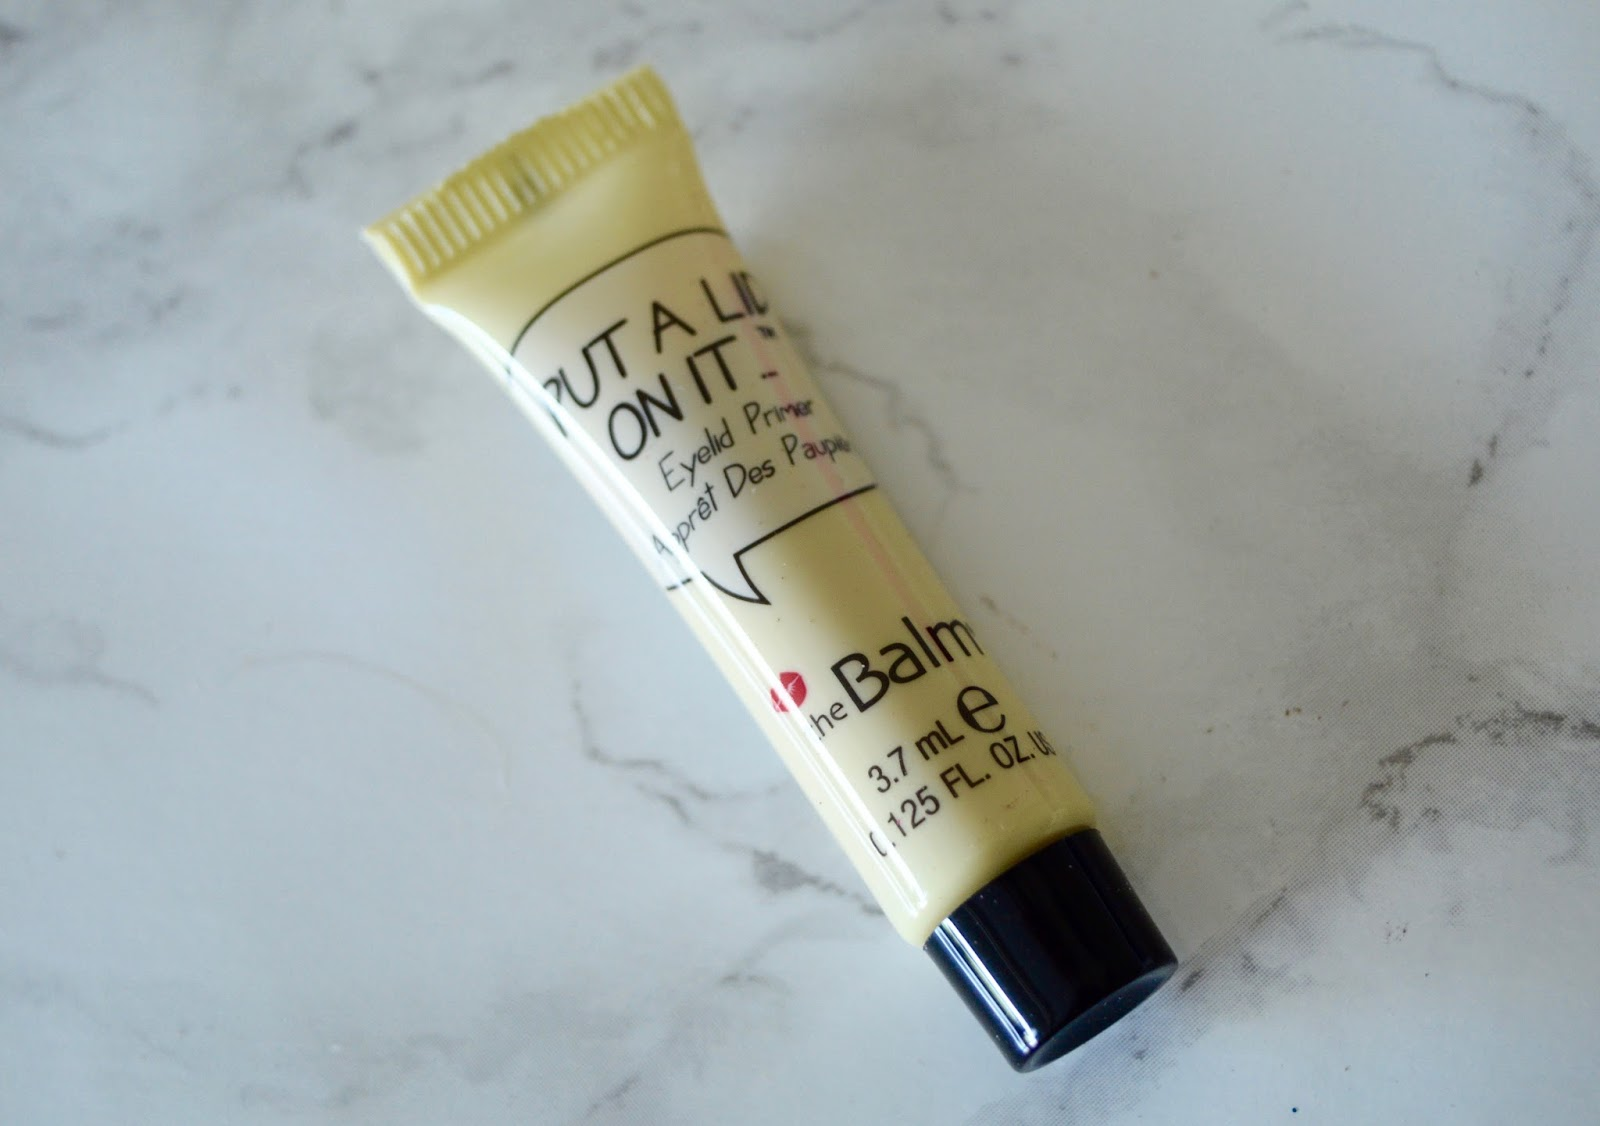 thebalm put a lid on it eyelid primer